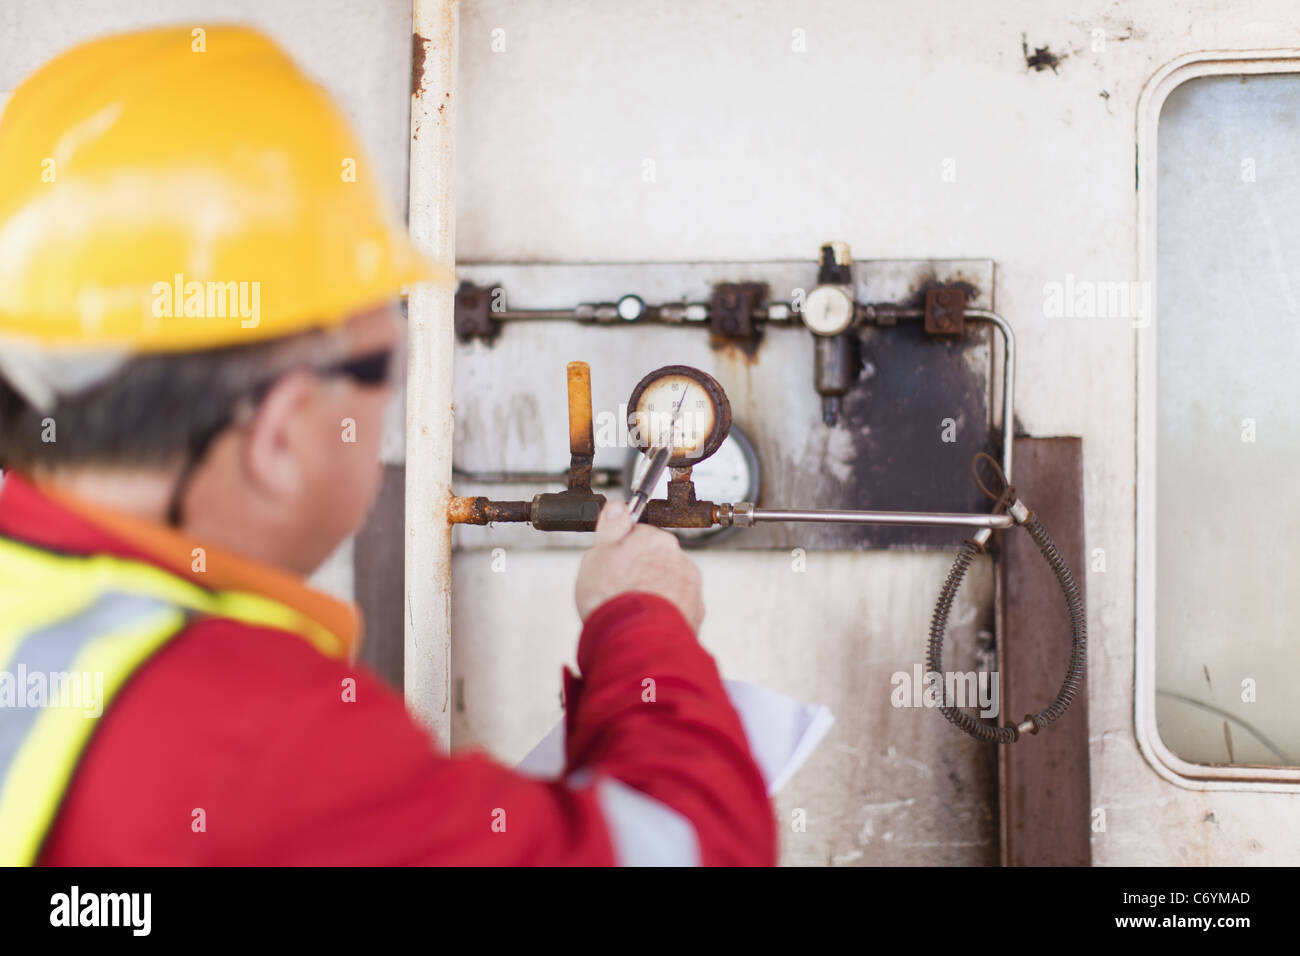 Worker checking gauge on oil rig - Stock Image